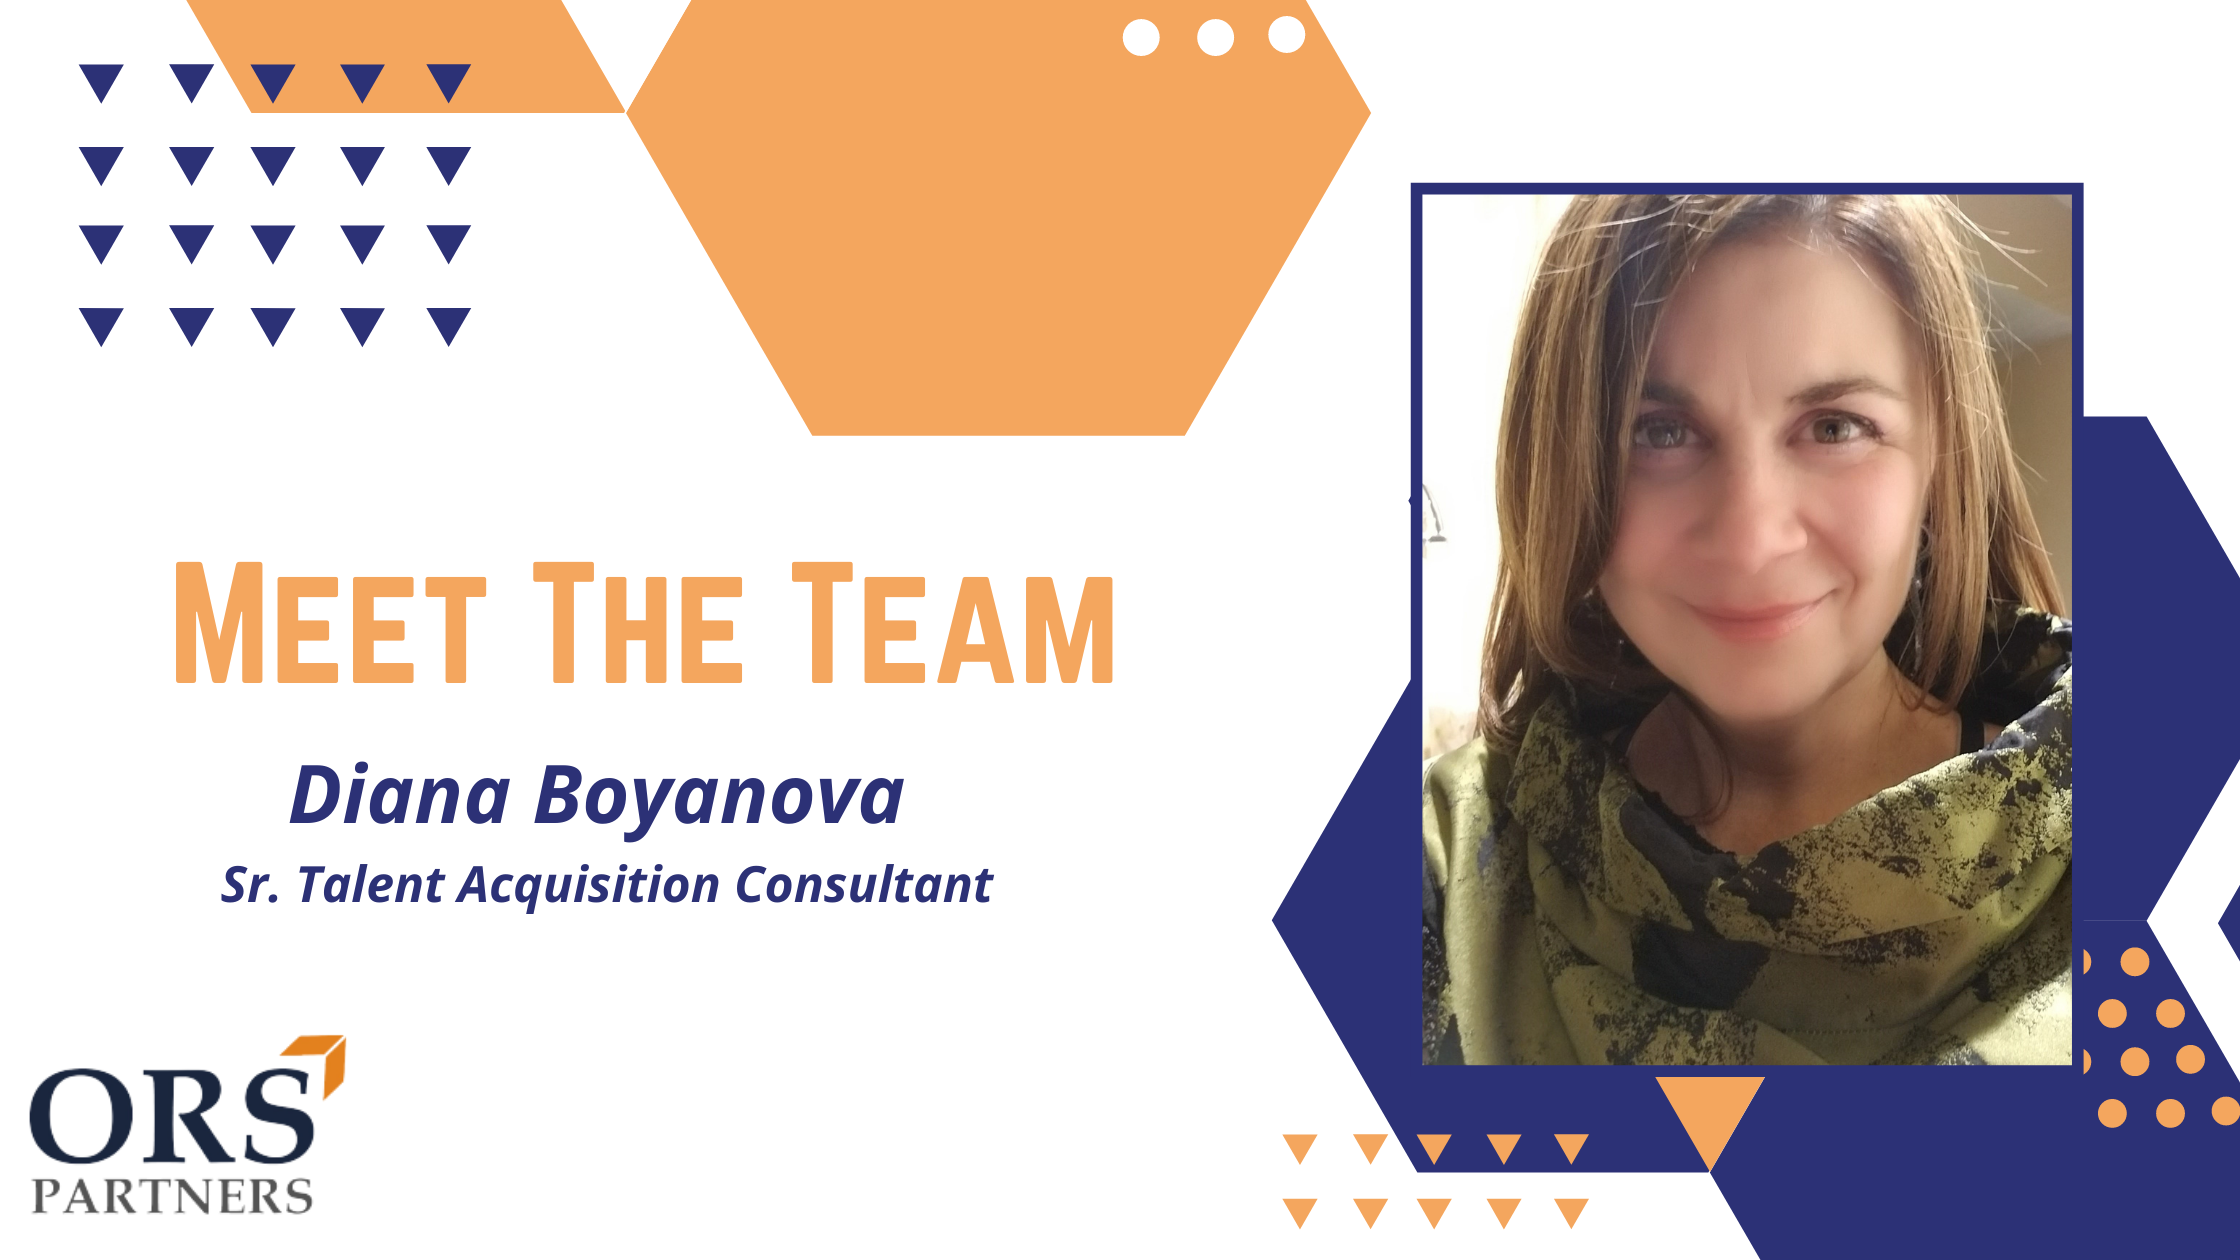 Meet the Team: Diana Boyanova